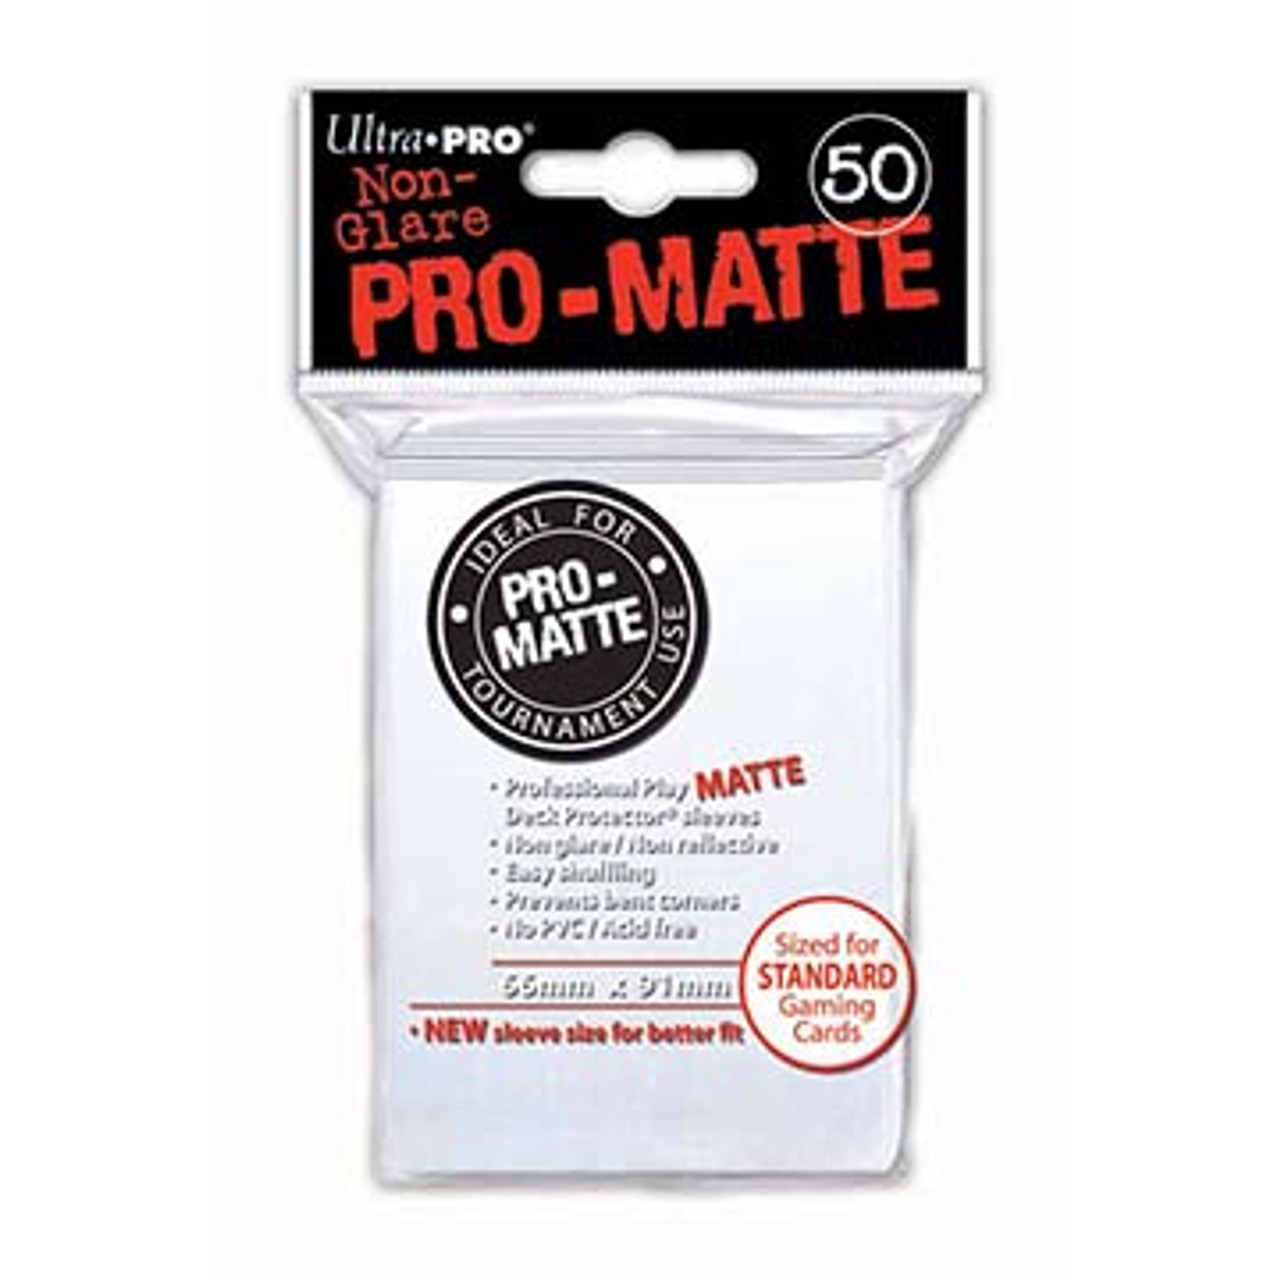 Deck Protectors - Pro-Matte - White (One Pack of 50)